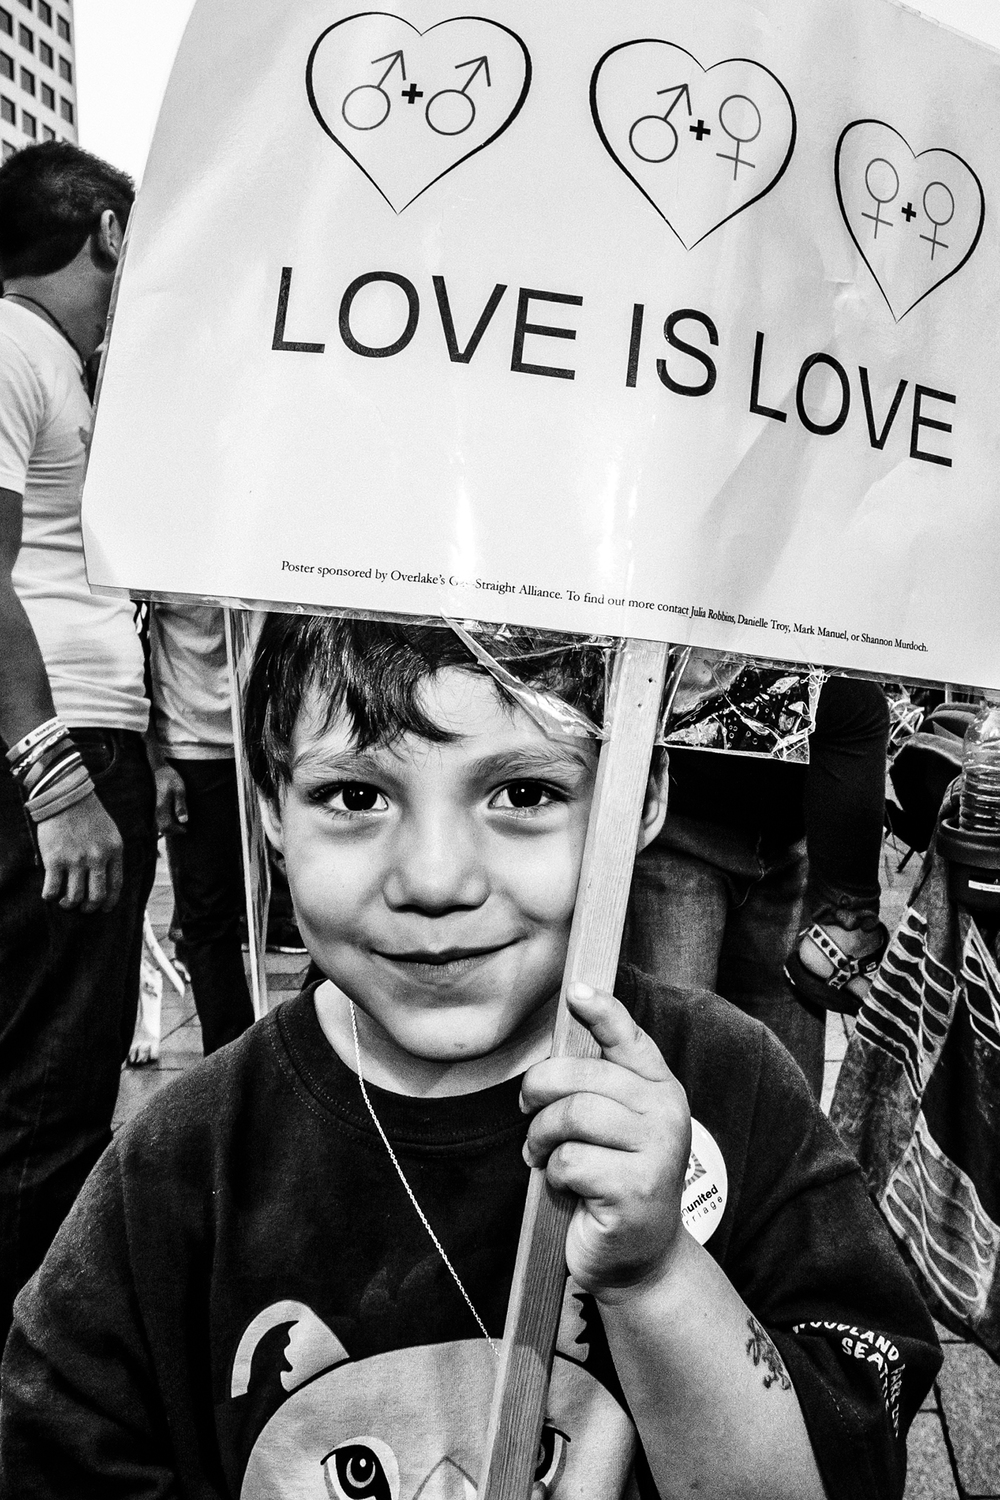 A boy holds a sign at a March for Marriage Equality rally in downtown Seattle on October 6th, 2012.